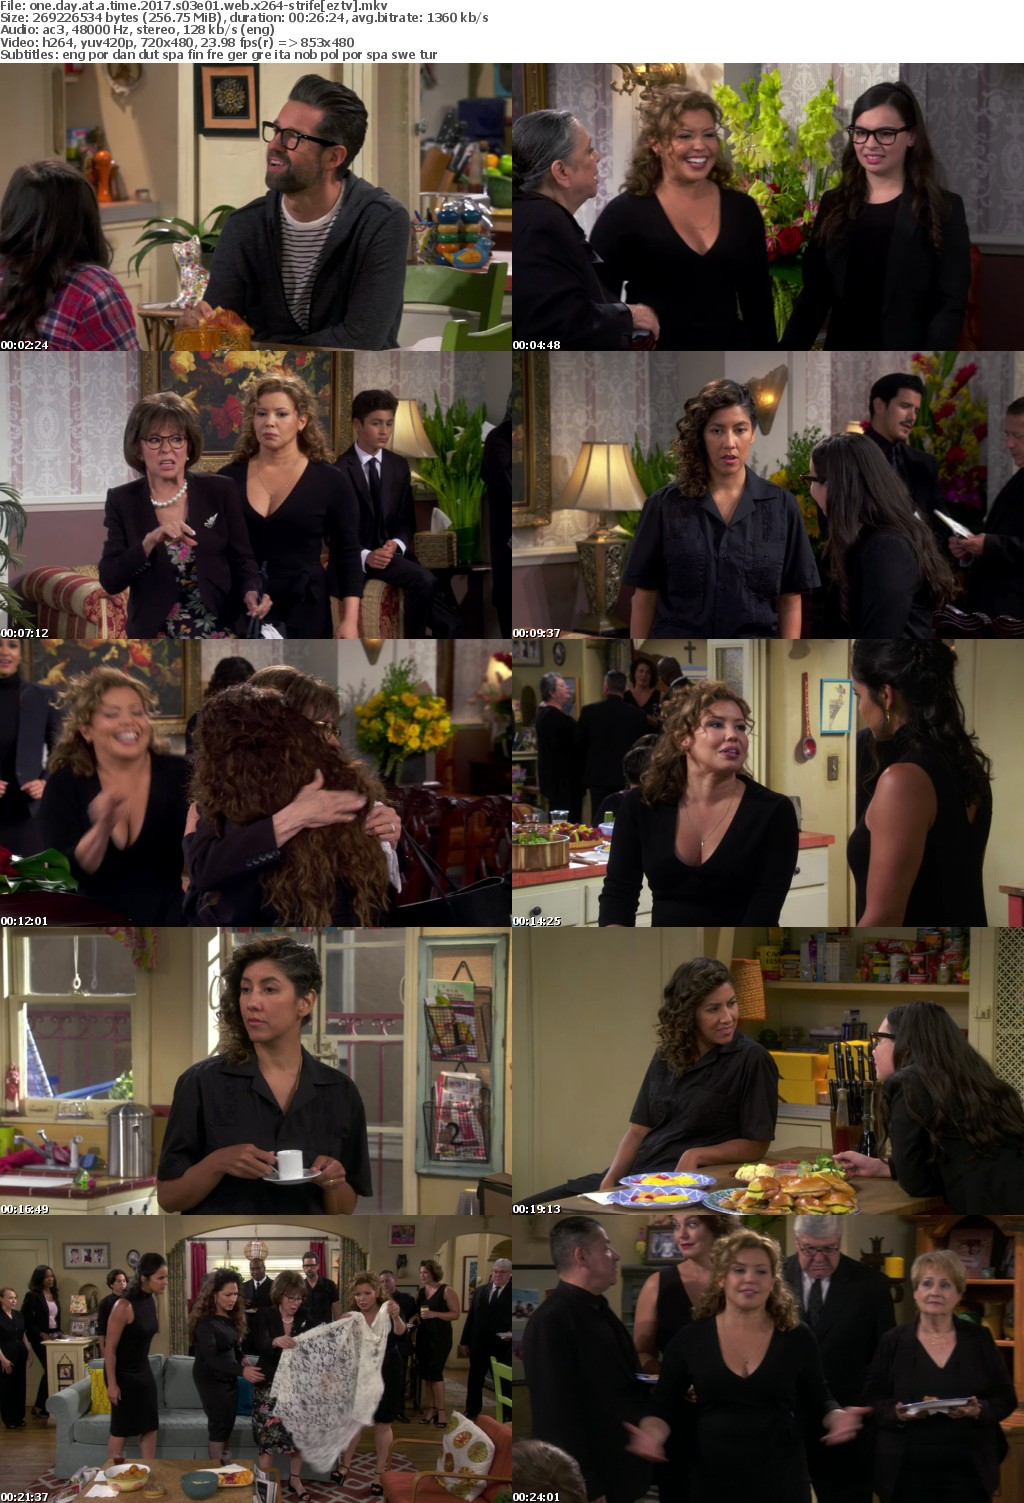 One Day at a Time 2017 S03E01 WEB x264-STRiFE